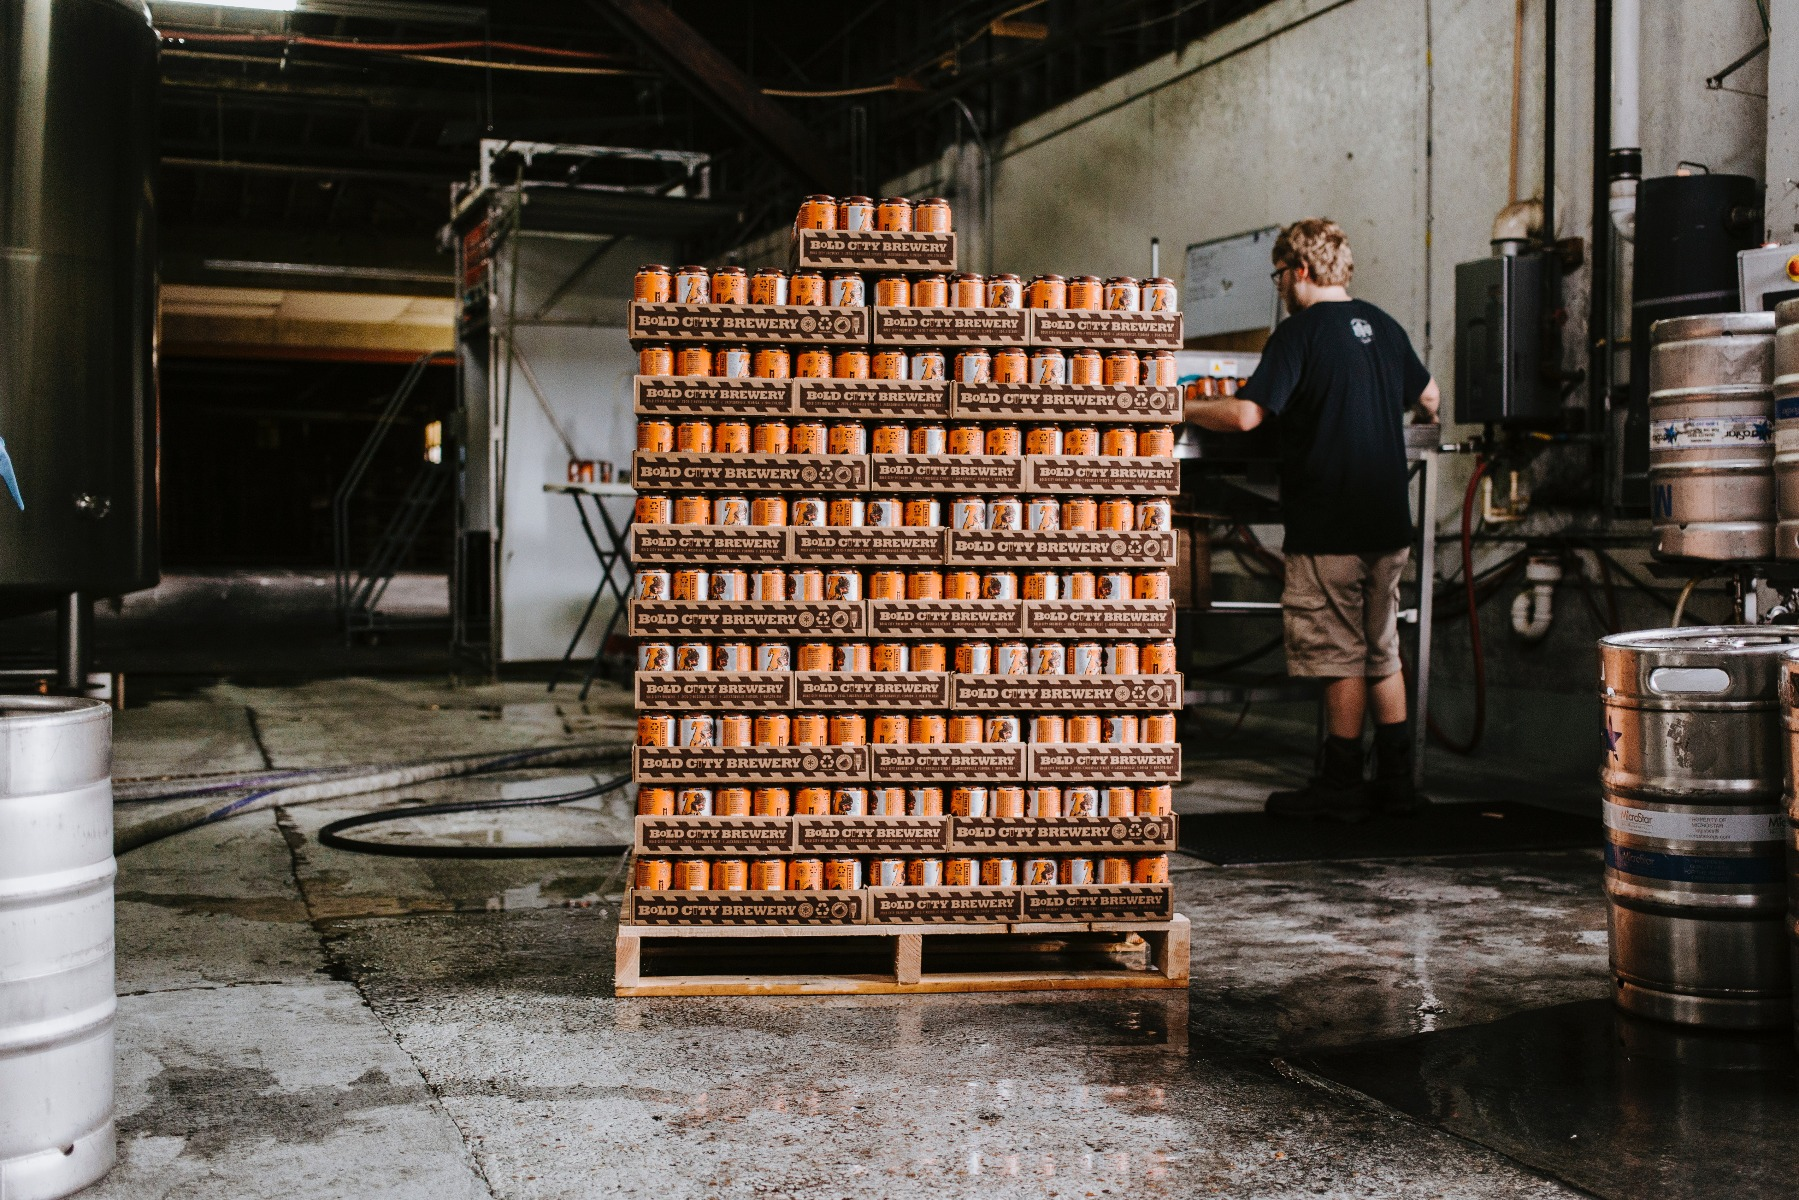 Cans on a pallet